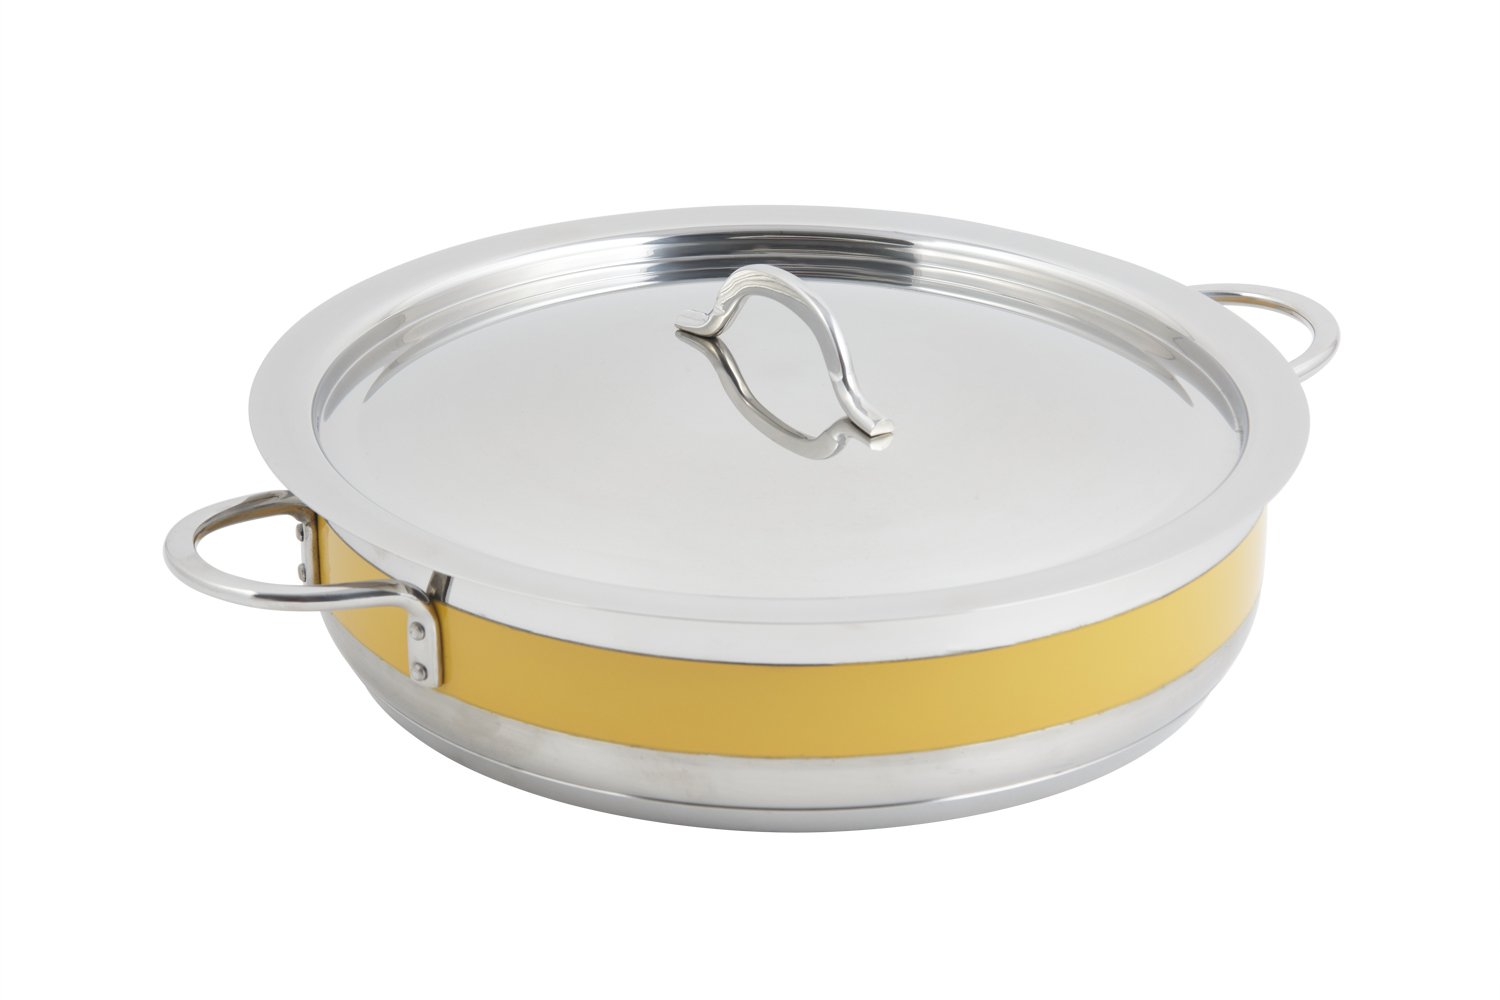 Bon Chef 60030CFYellow Stainless Steel Induction Bottom Classic Country French Pot with Cover, 6 quart Capacity, 12-3/8'' Diameter x 3'' Height, Yellow